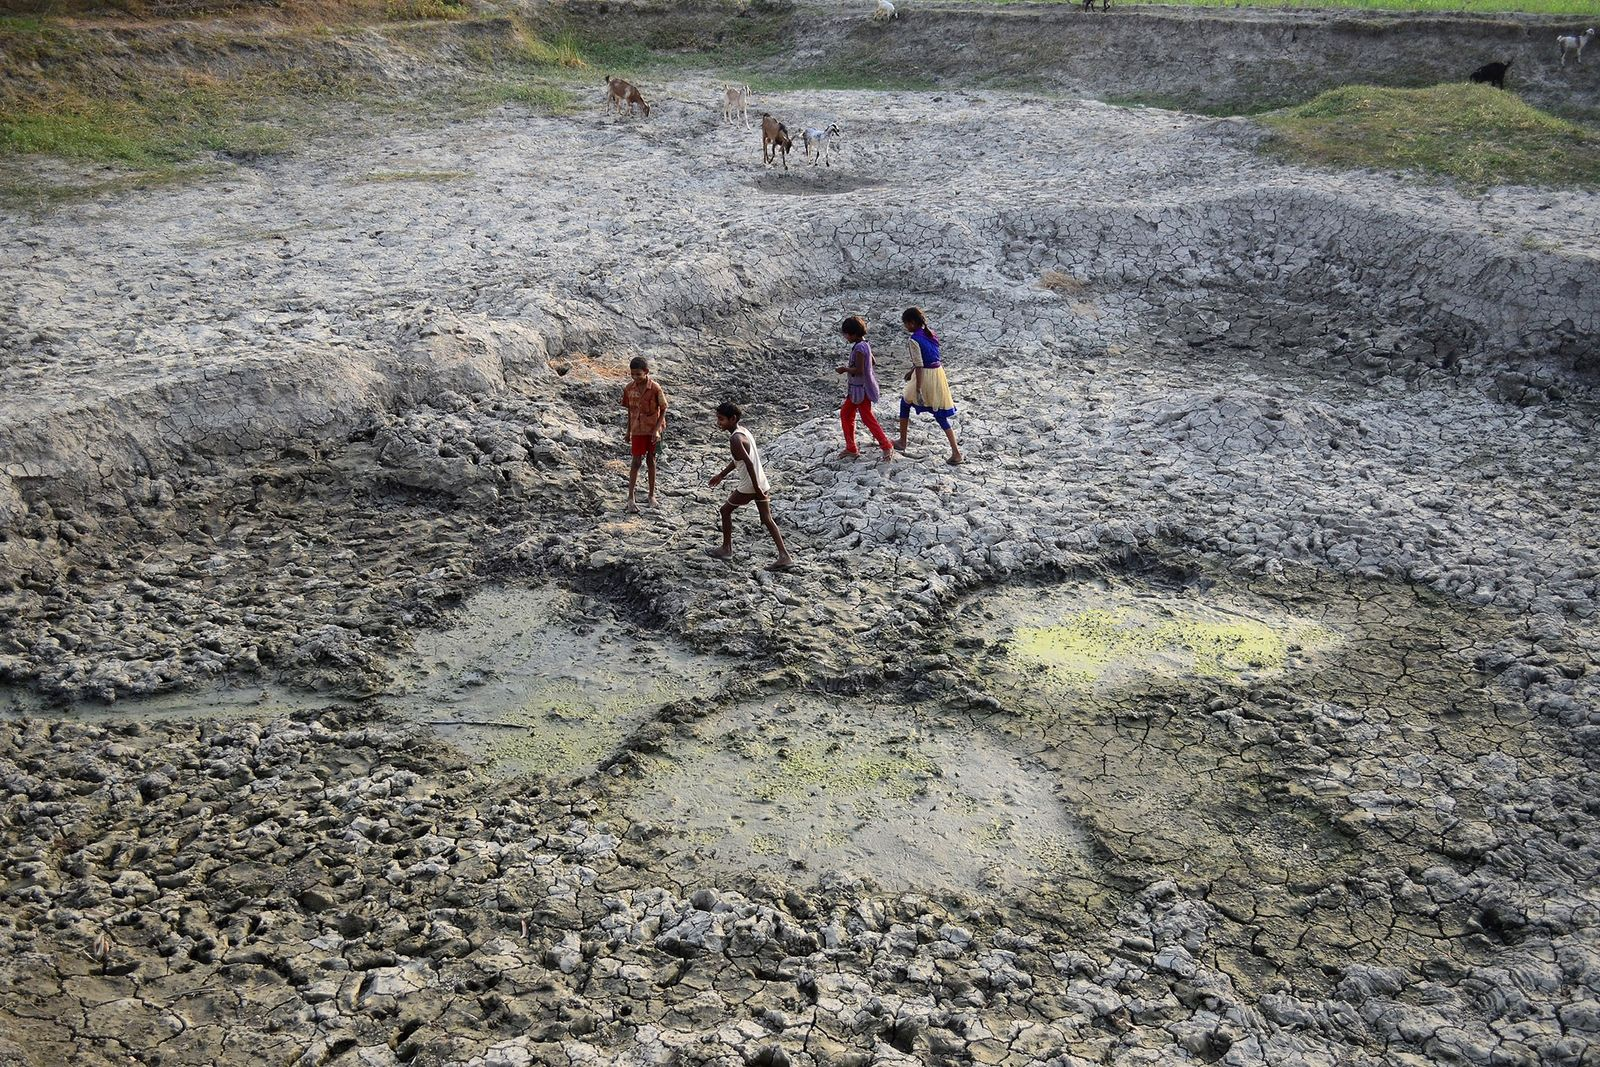 Indian children play on a parched area of the shrunken Varuna River, a tributary of the ...